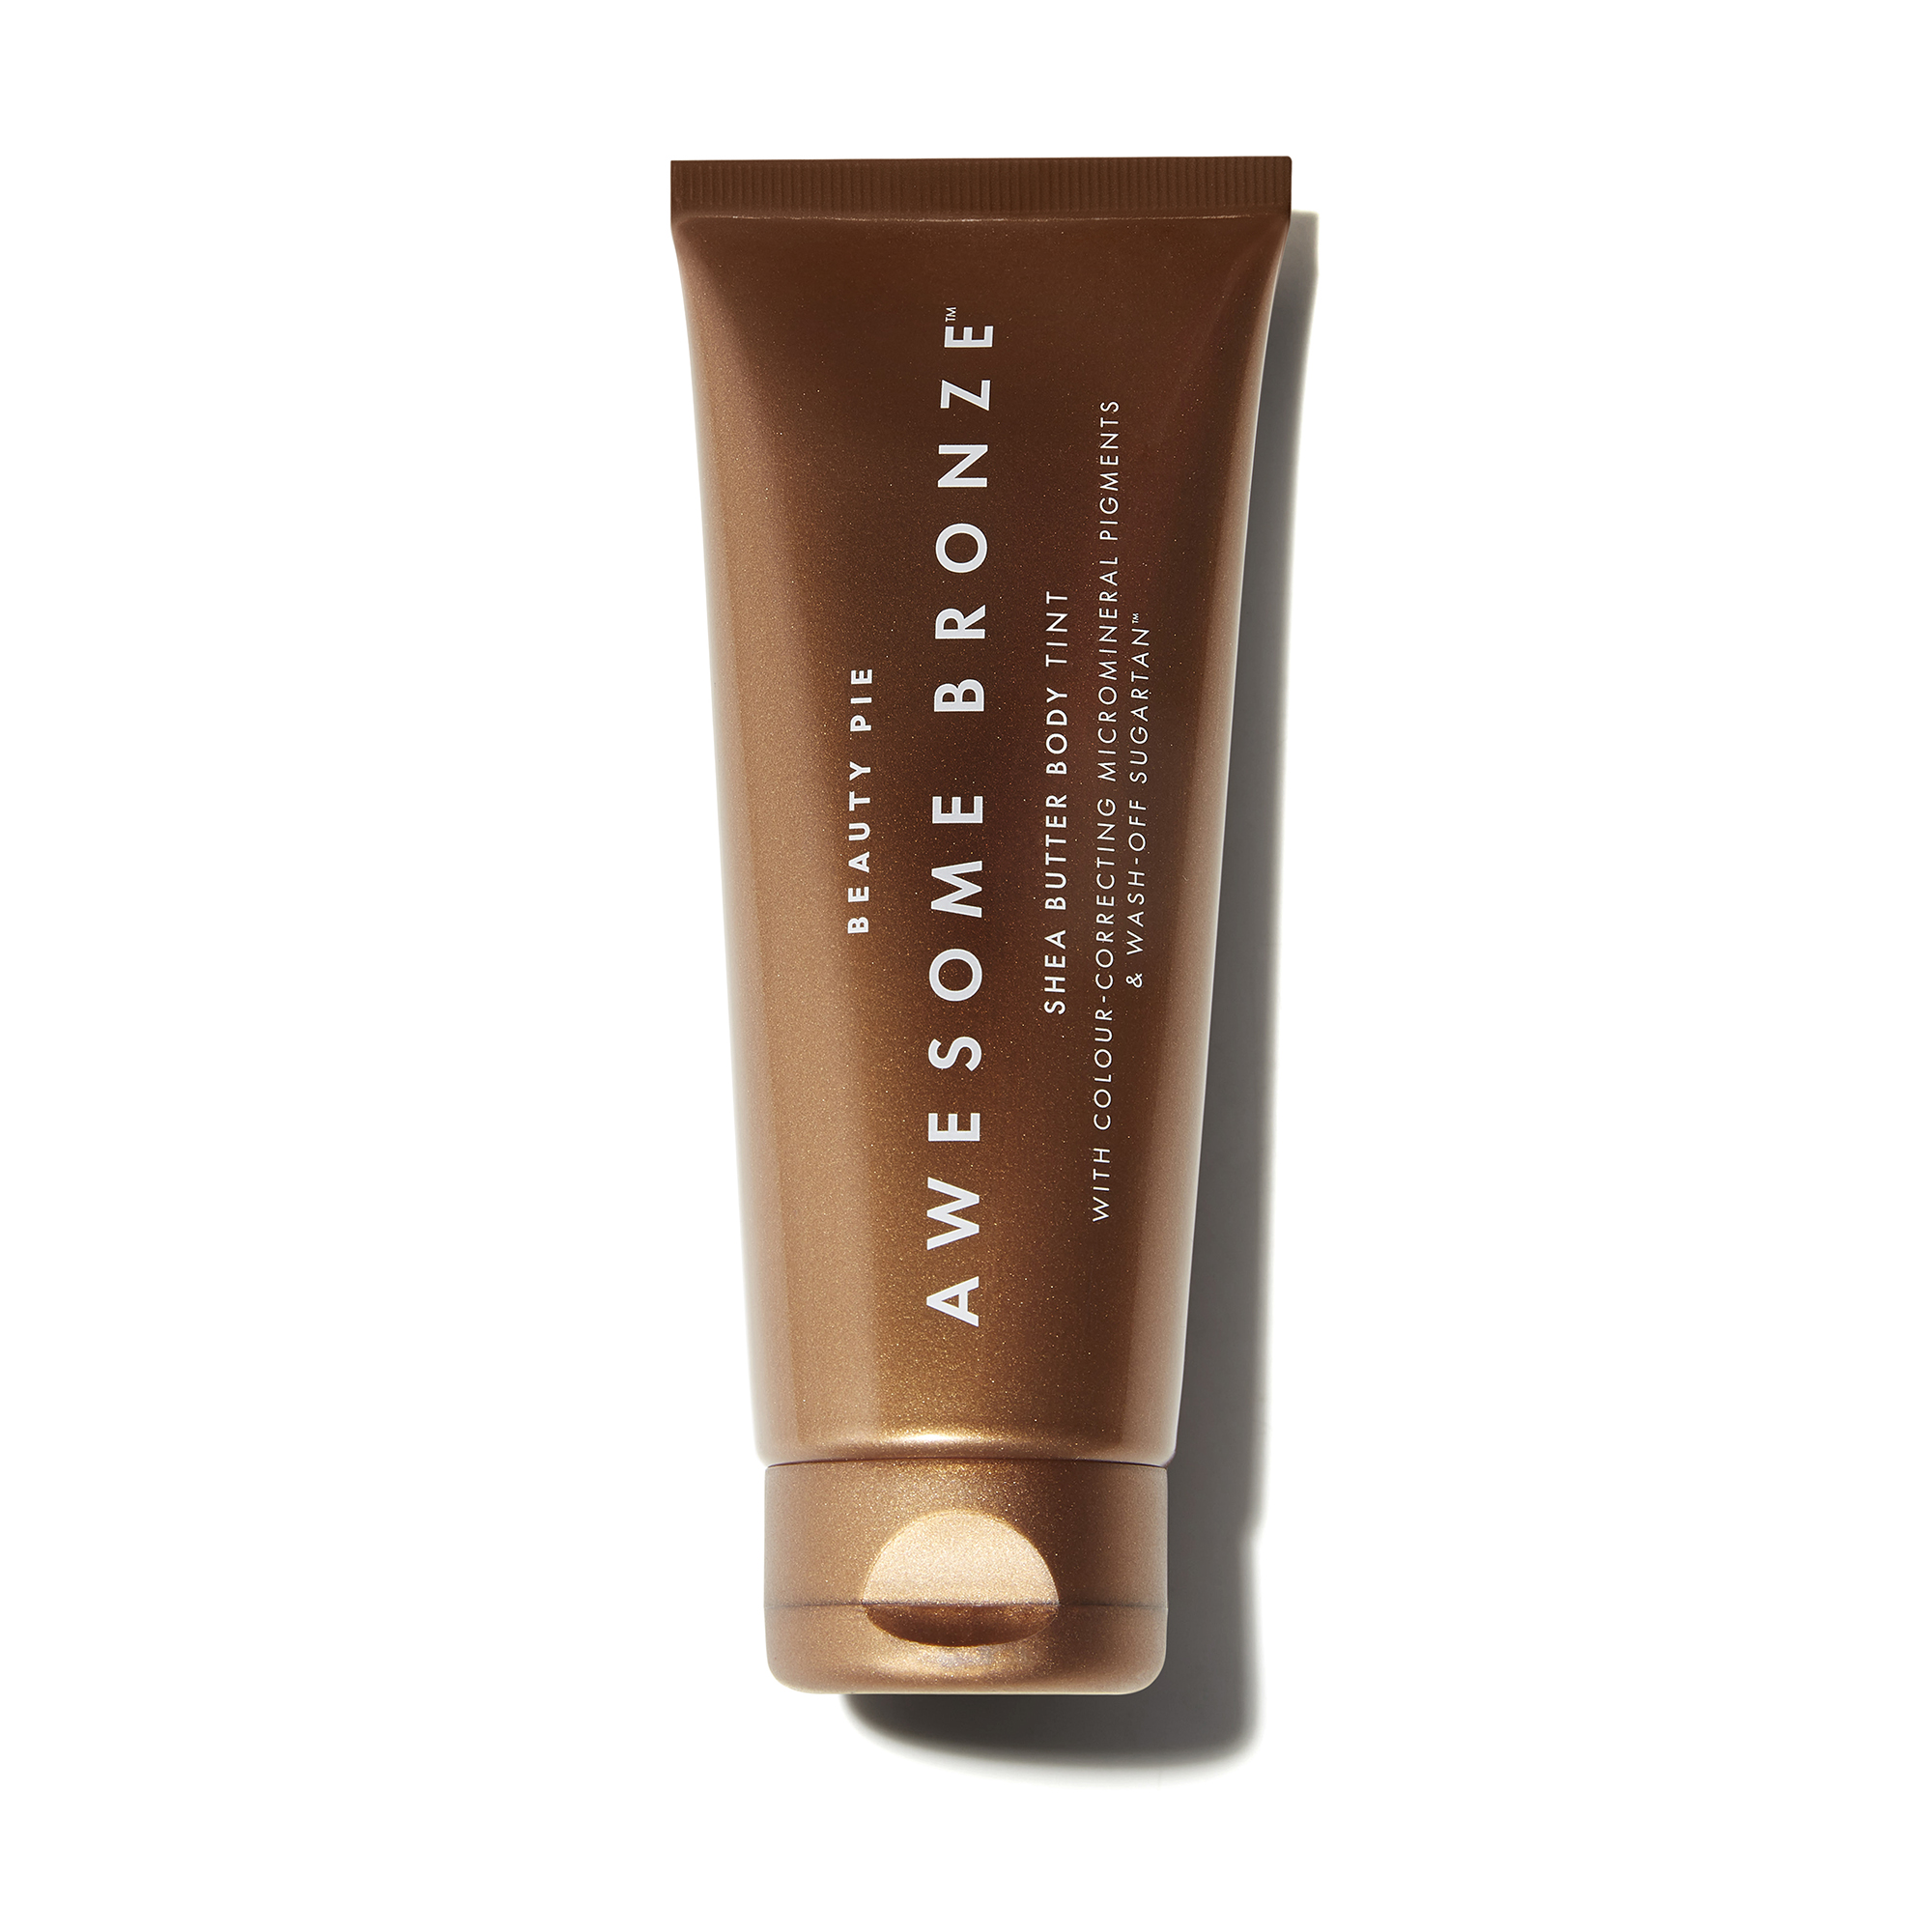 Awesome Bronze™ Shea Butter Body Tint by Beauty Pie